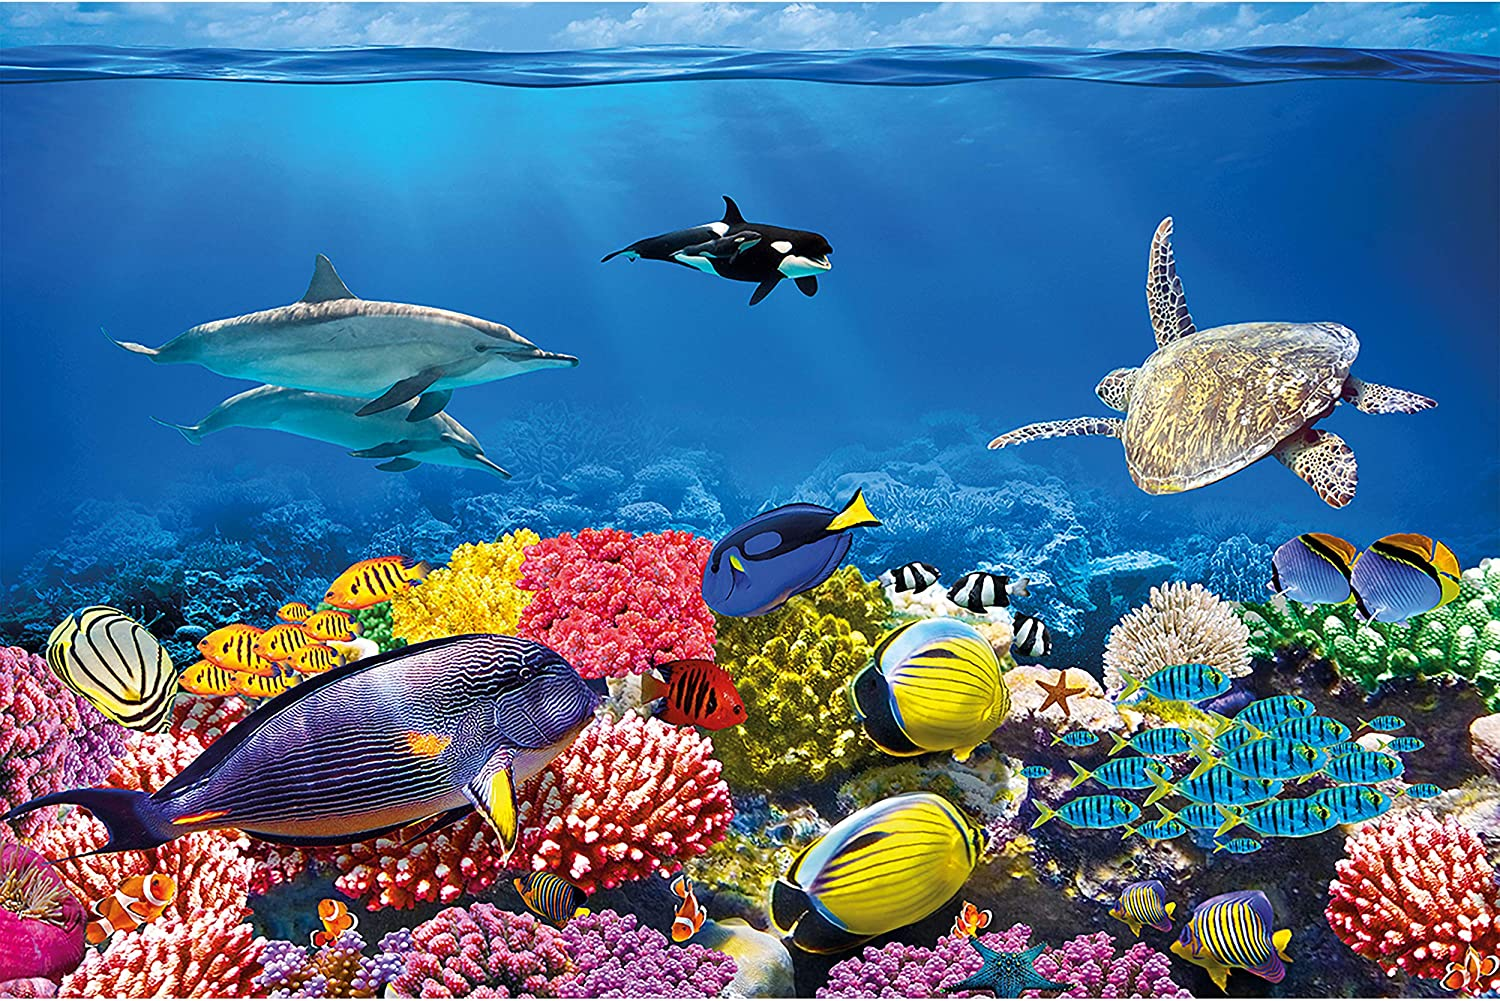 GREAT ART Kid's Room Nursery Photo Wallpaper – Aquarium – Picture Decoration Underwater World Sea Dweller Ocean Fish Turtle Coral Reef Image Decor Wall Mural (82.7x55.1in - 210x140cm)